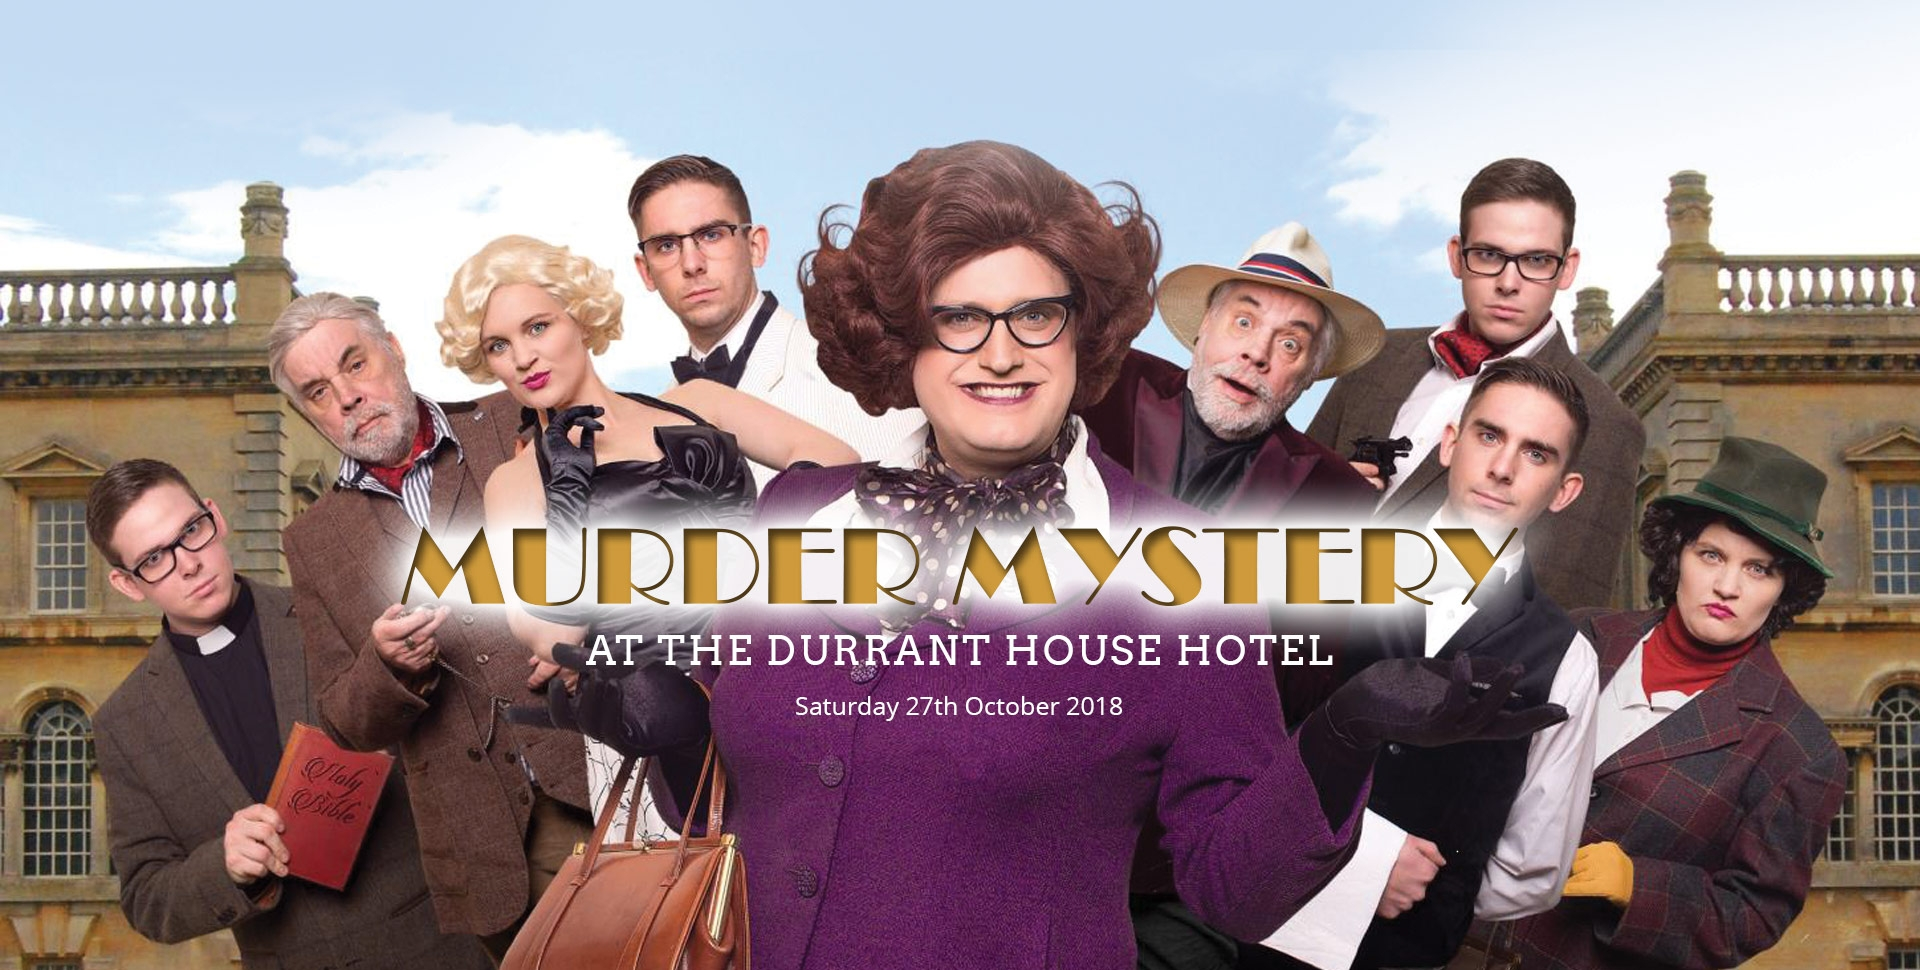 Murder Mystery at the Durrant House Hotel - Saturday 27th October 2018